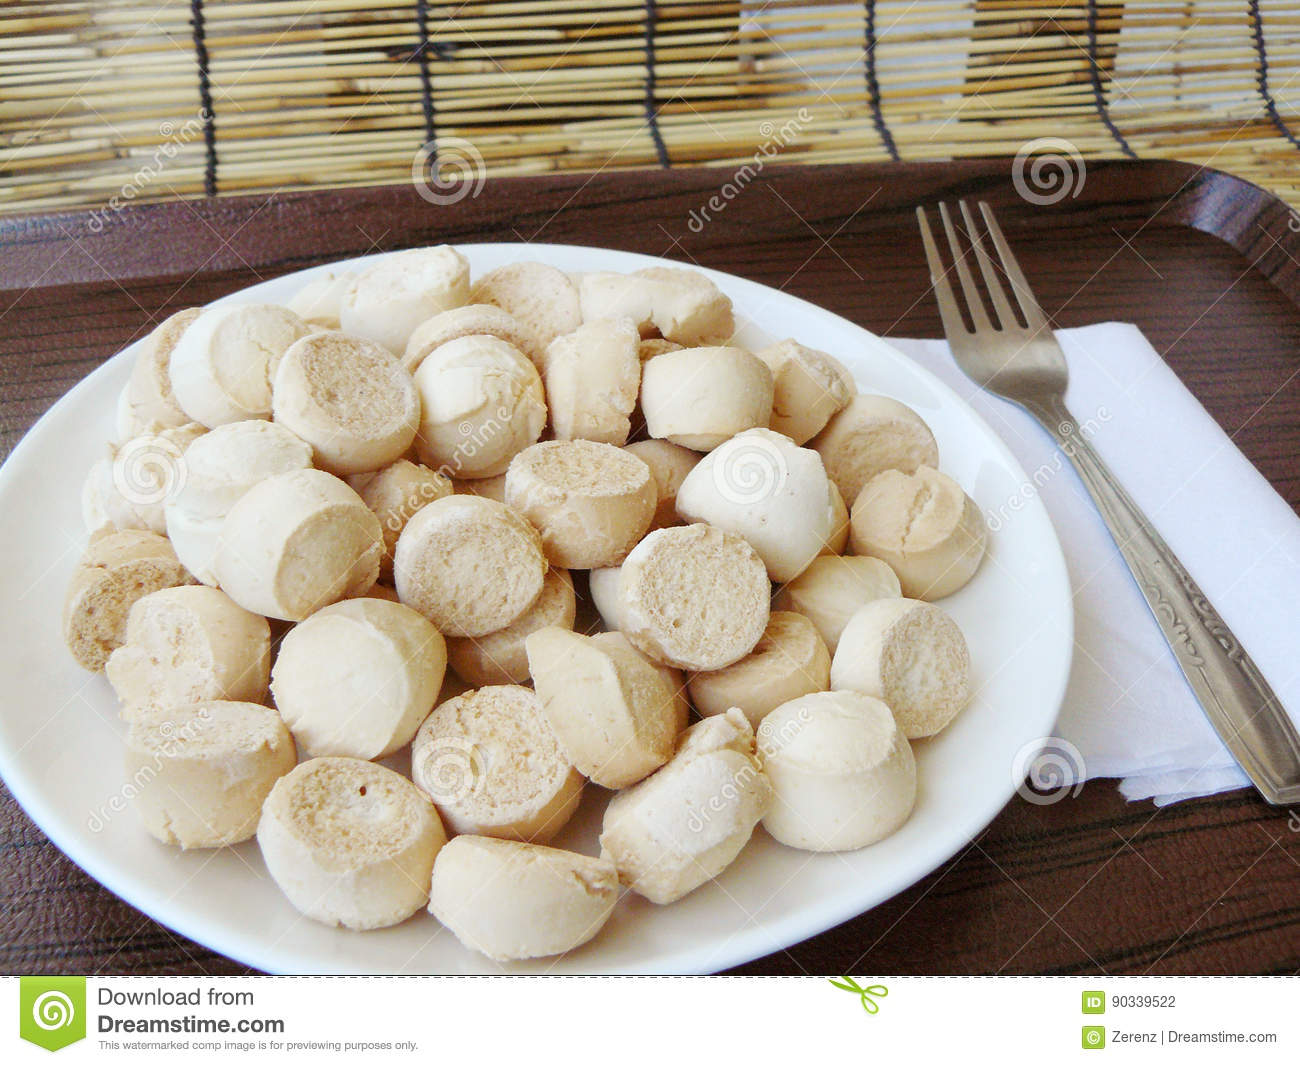 Asia - Asian Thai food, Baking pastry, Thai sweetmeat made of flour, egg  and sugar. Its Thai cookies the name is Kanom Ping, on white plate with  stainless ...